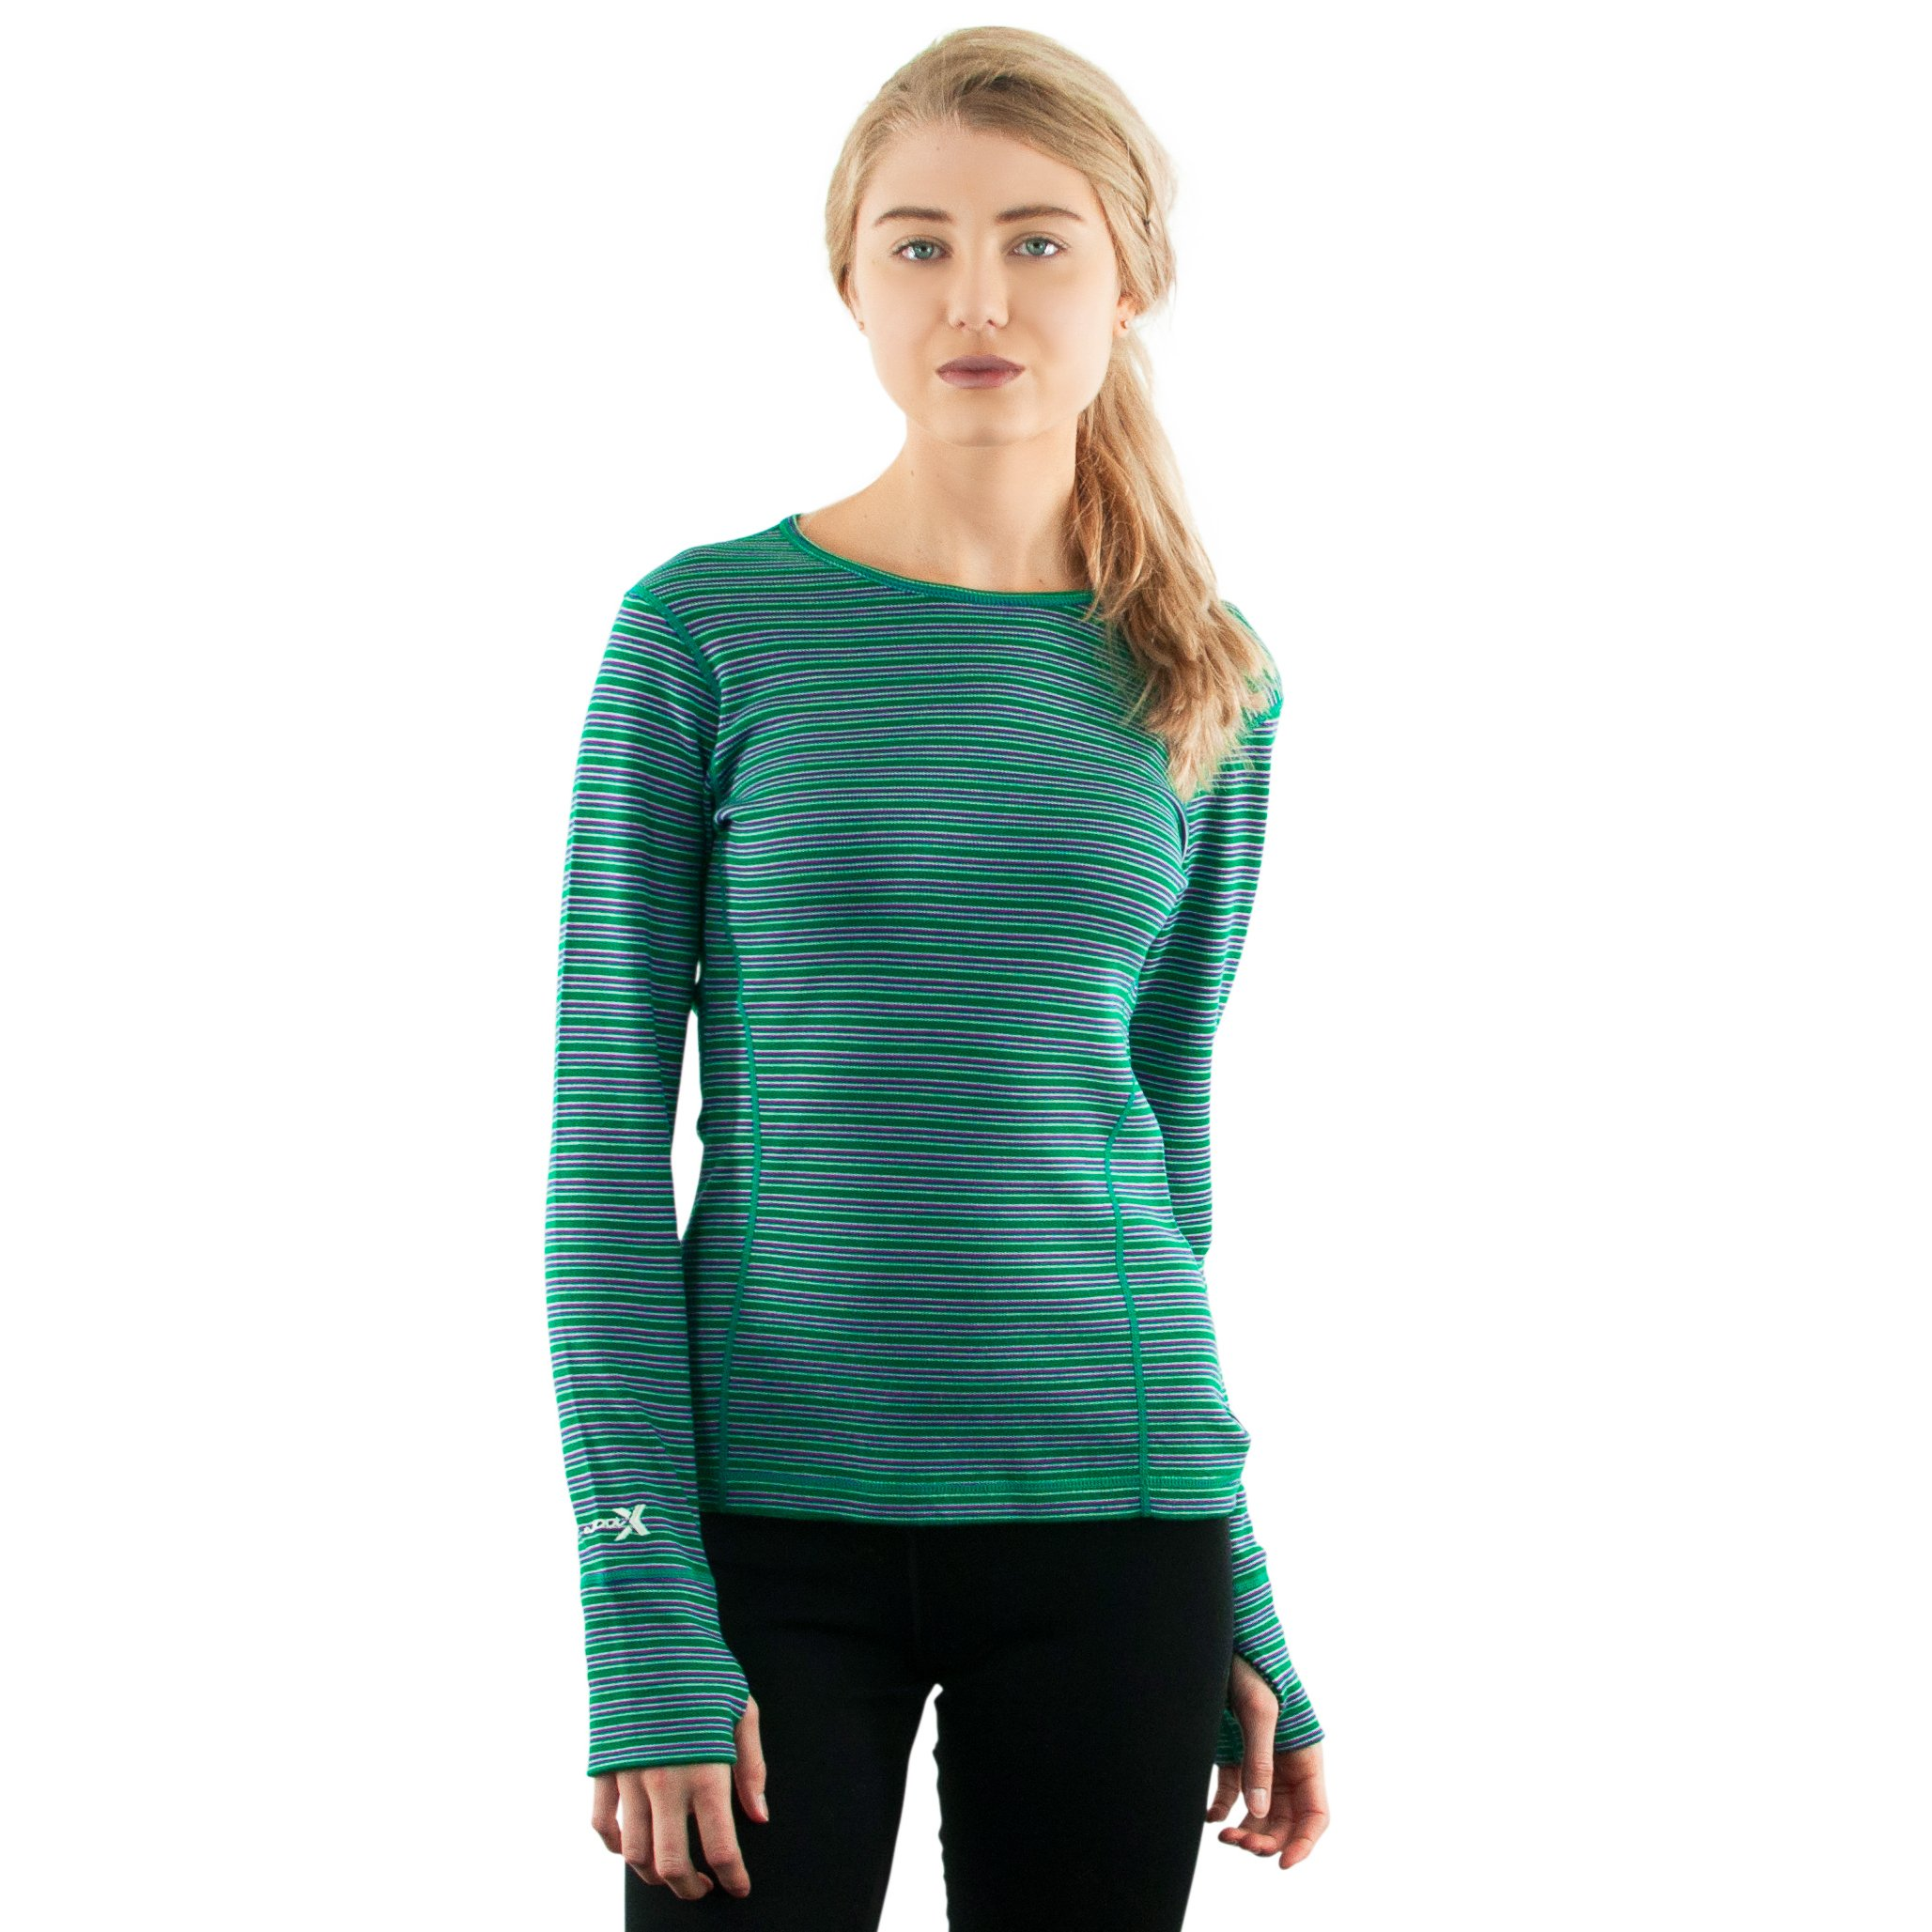 WoolX X752 Womens Heavyweight Alpine Top - Emerald/Stripe - 2XL